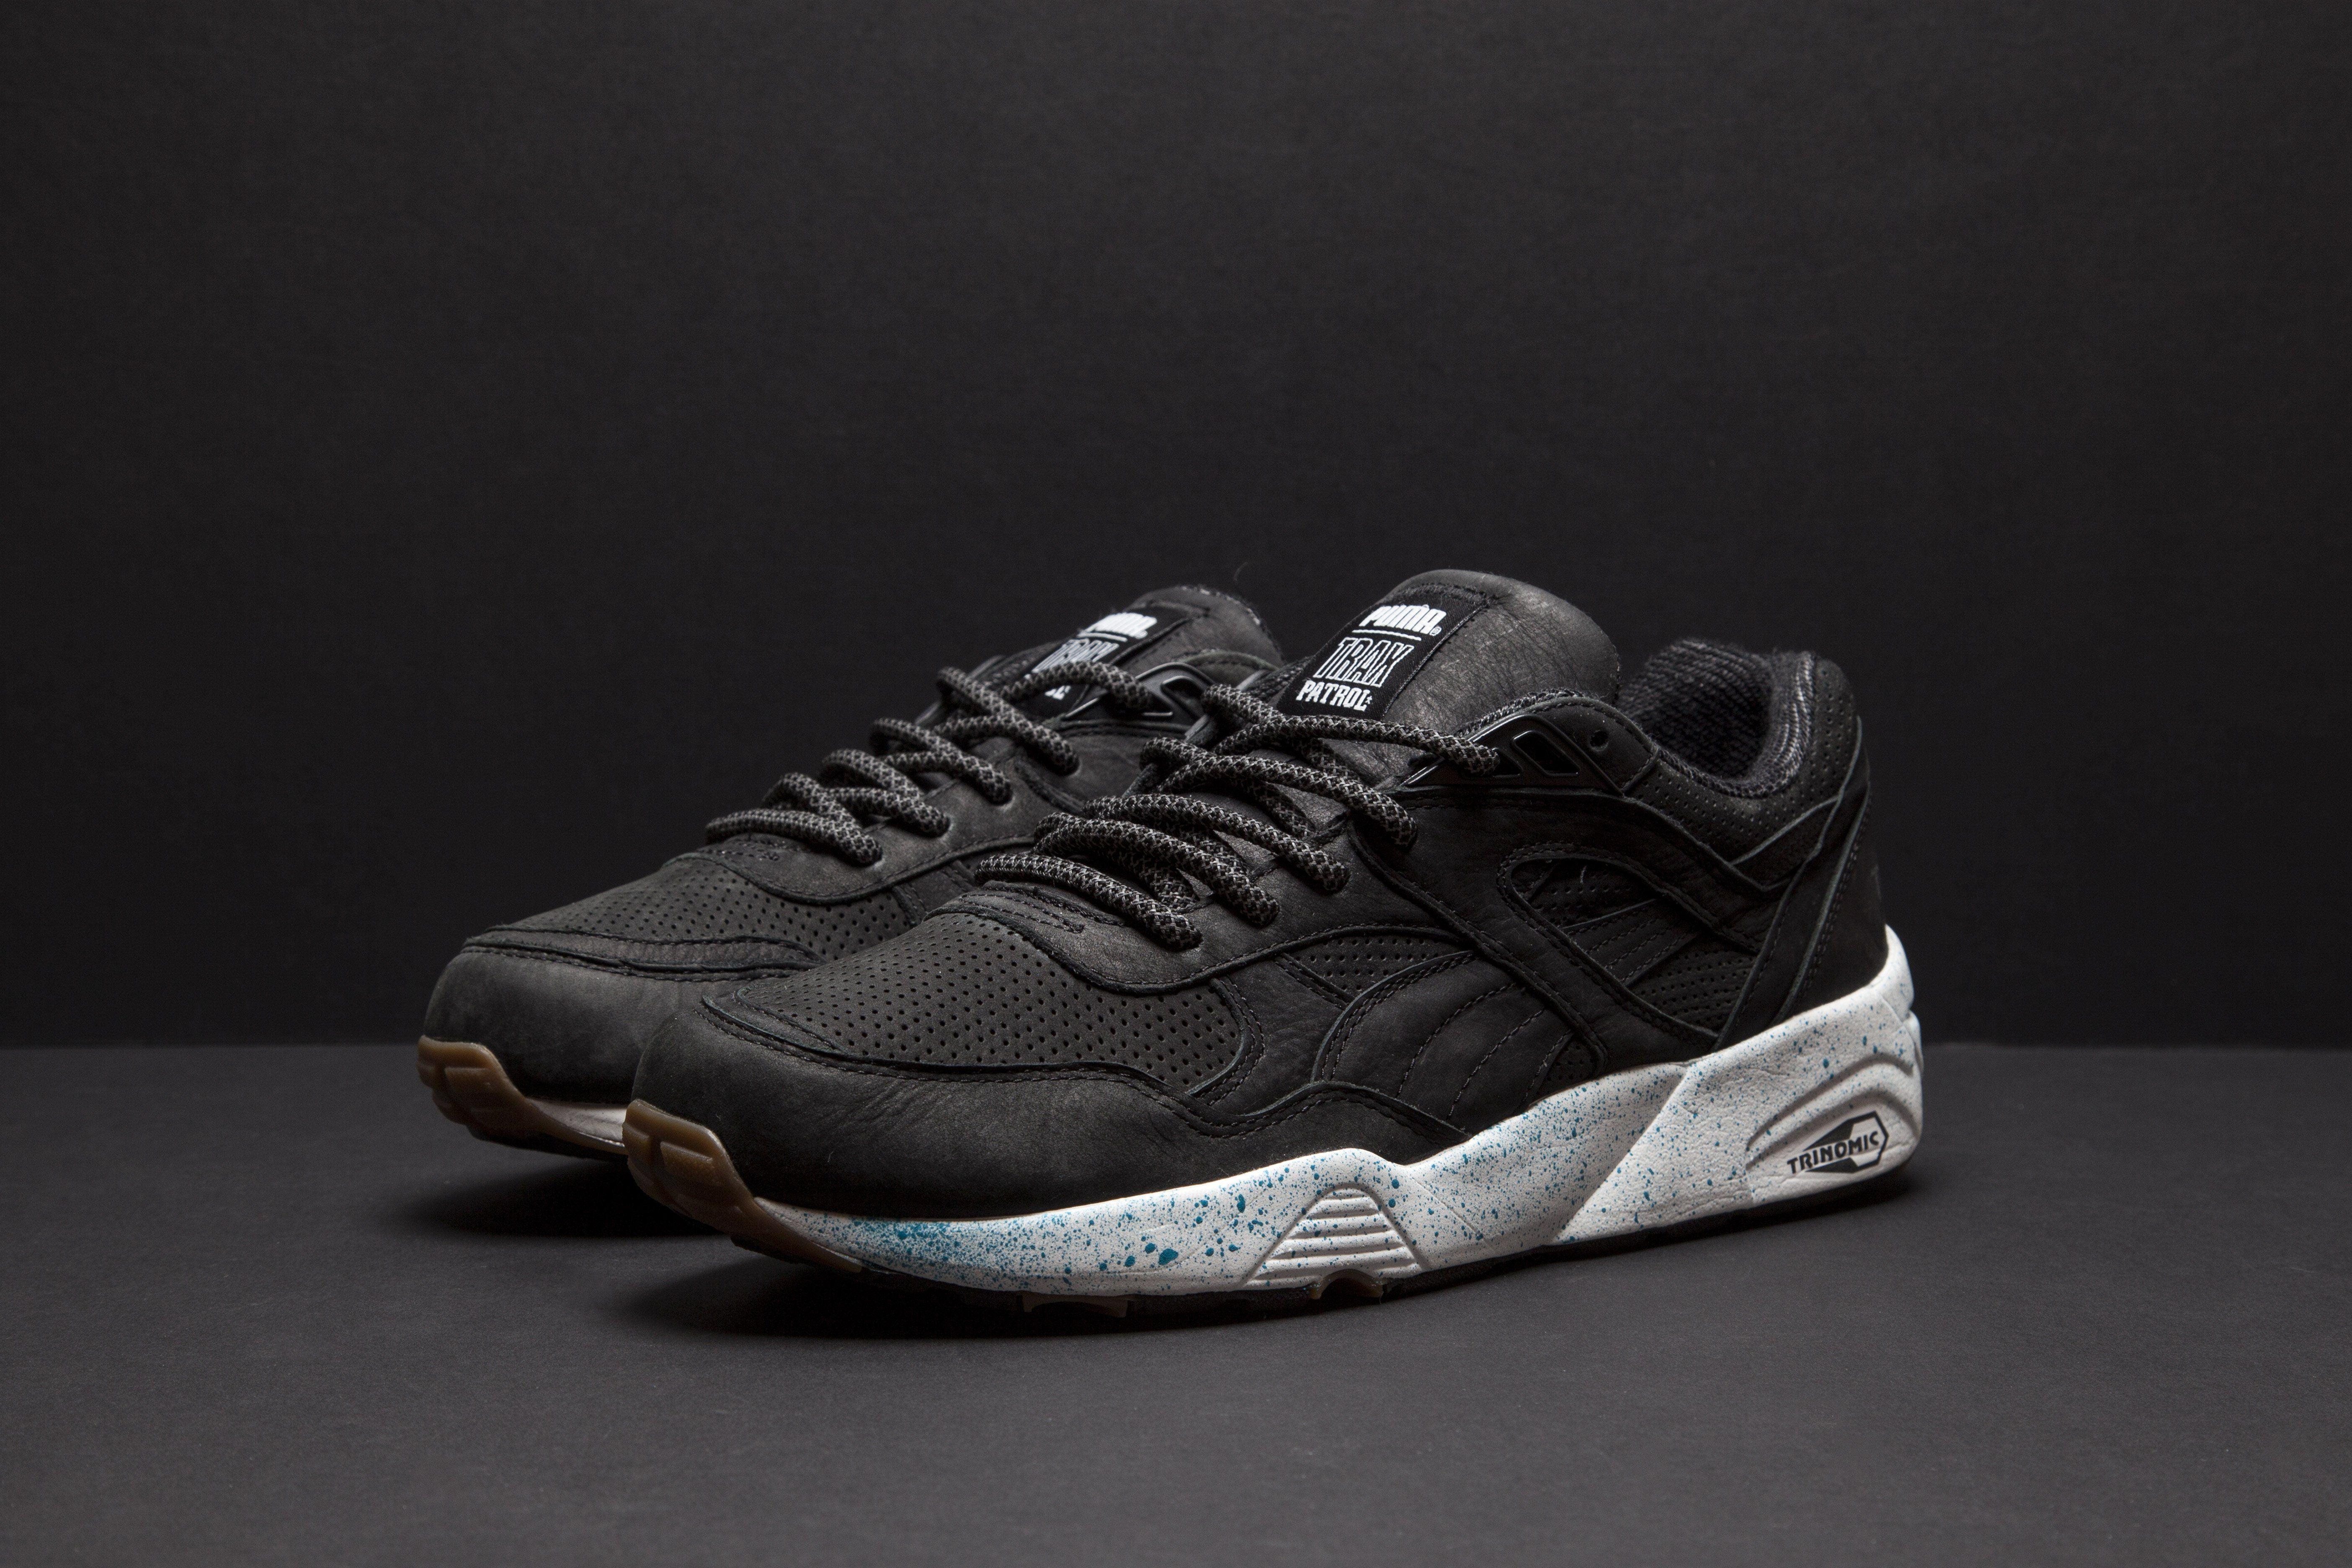 Puma x Foot Patrol x Trax Couture – Record Store Day 2015 Specials